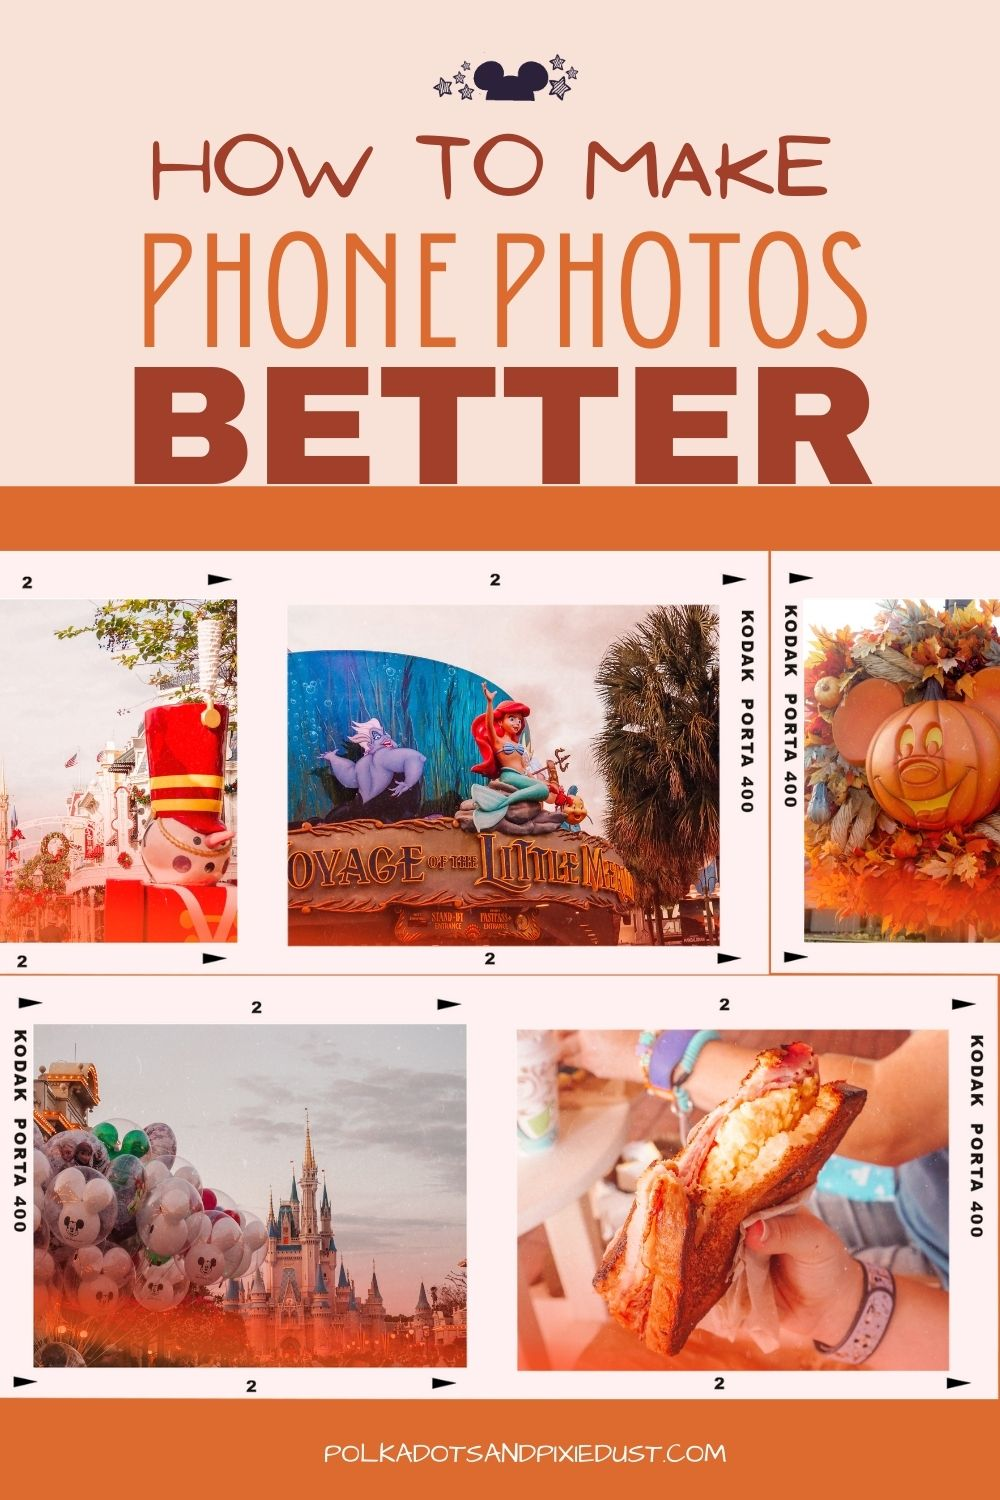 7 ways you can take better pictures with your phone. Everything you need for great Phone Photography! All our tips. #disneytips #disneyphotography #phonephotography